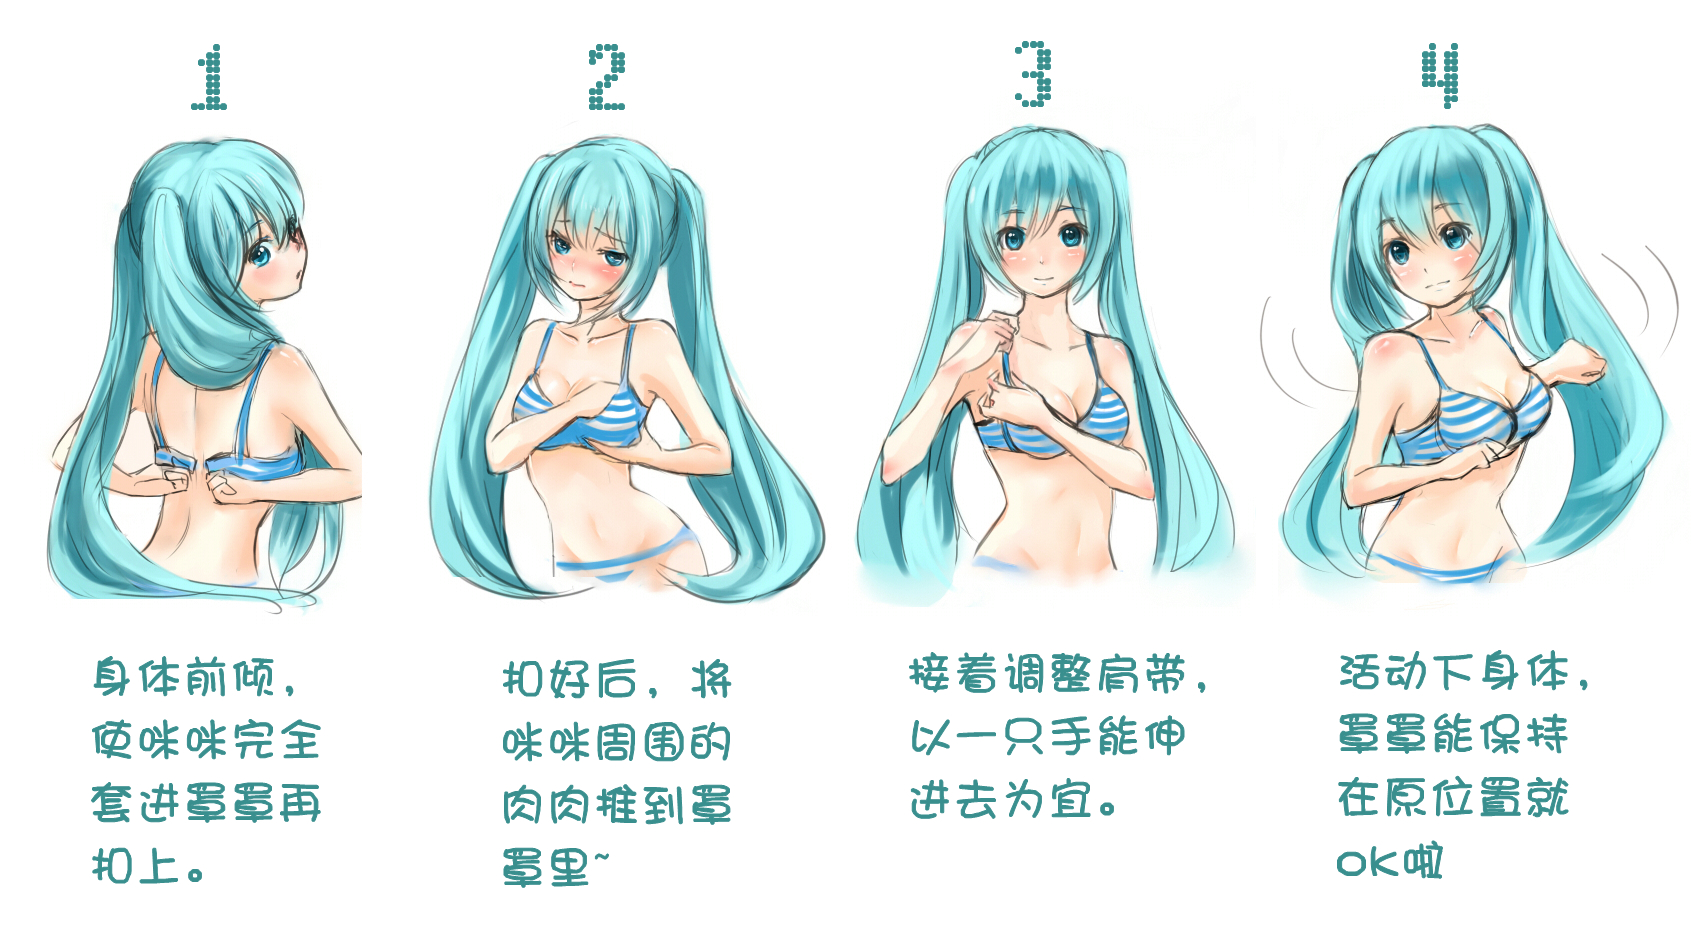 twintails underwear konachancom - photo #25